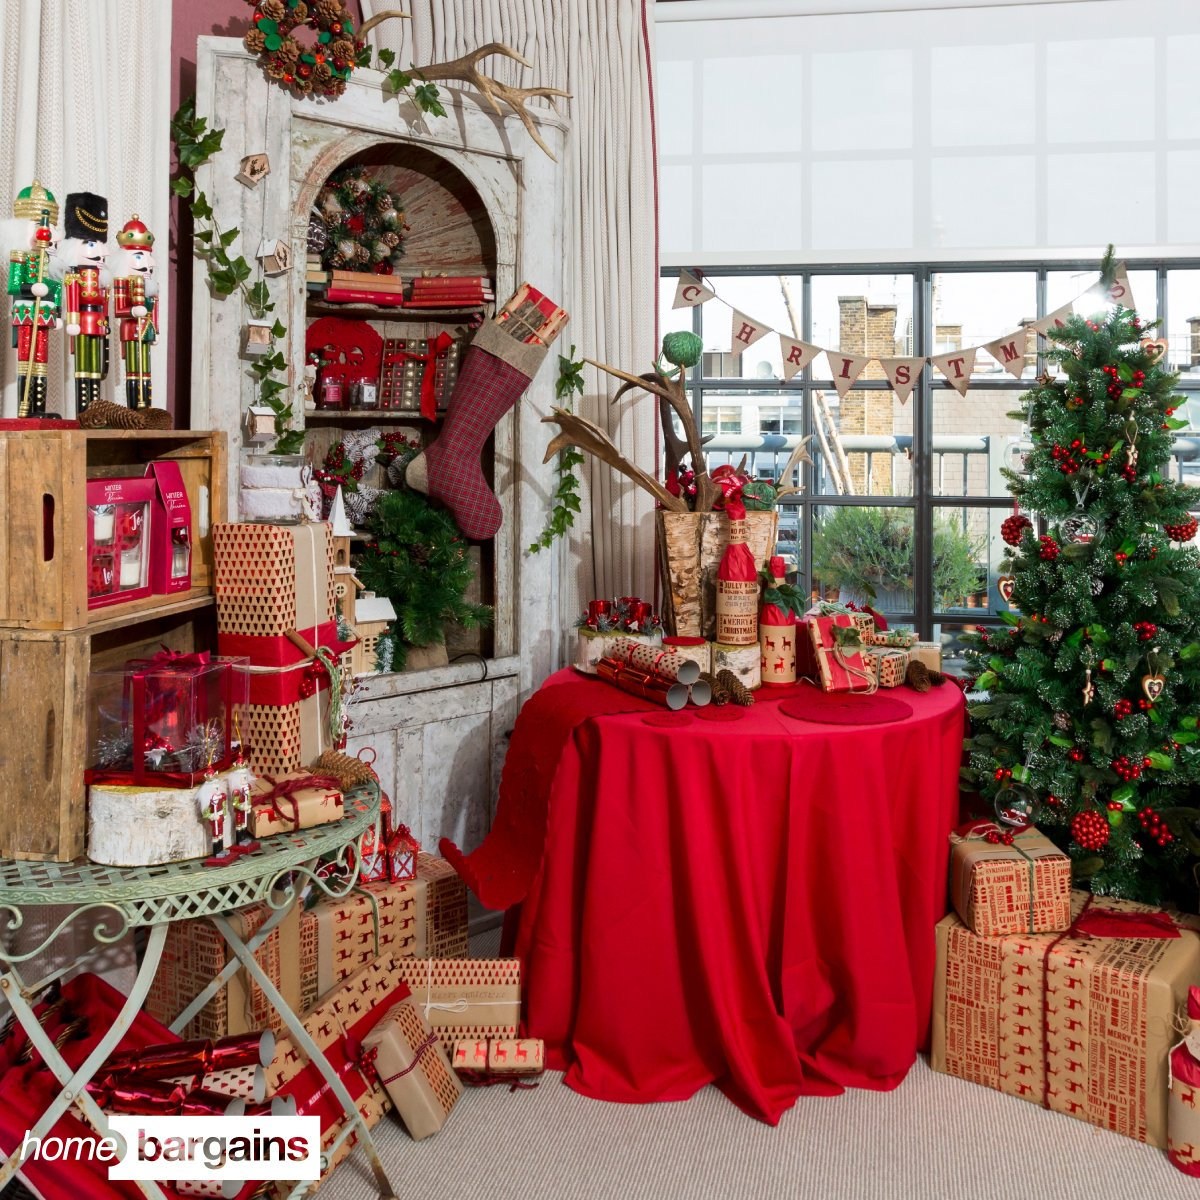 Christmas Decoration At Home: Christmas Decorations At Home Bargains